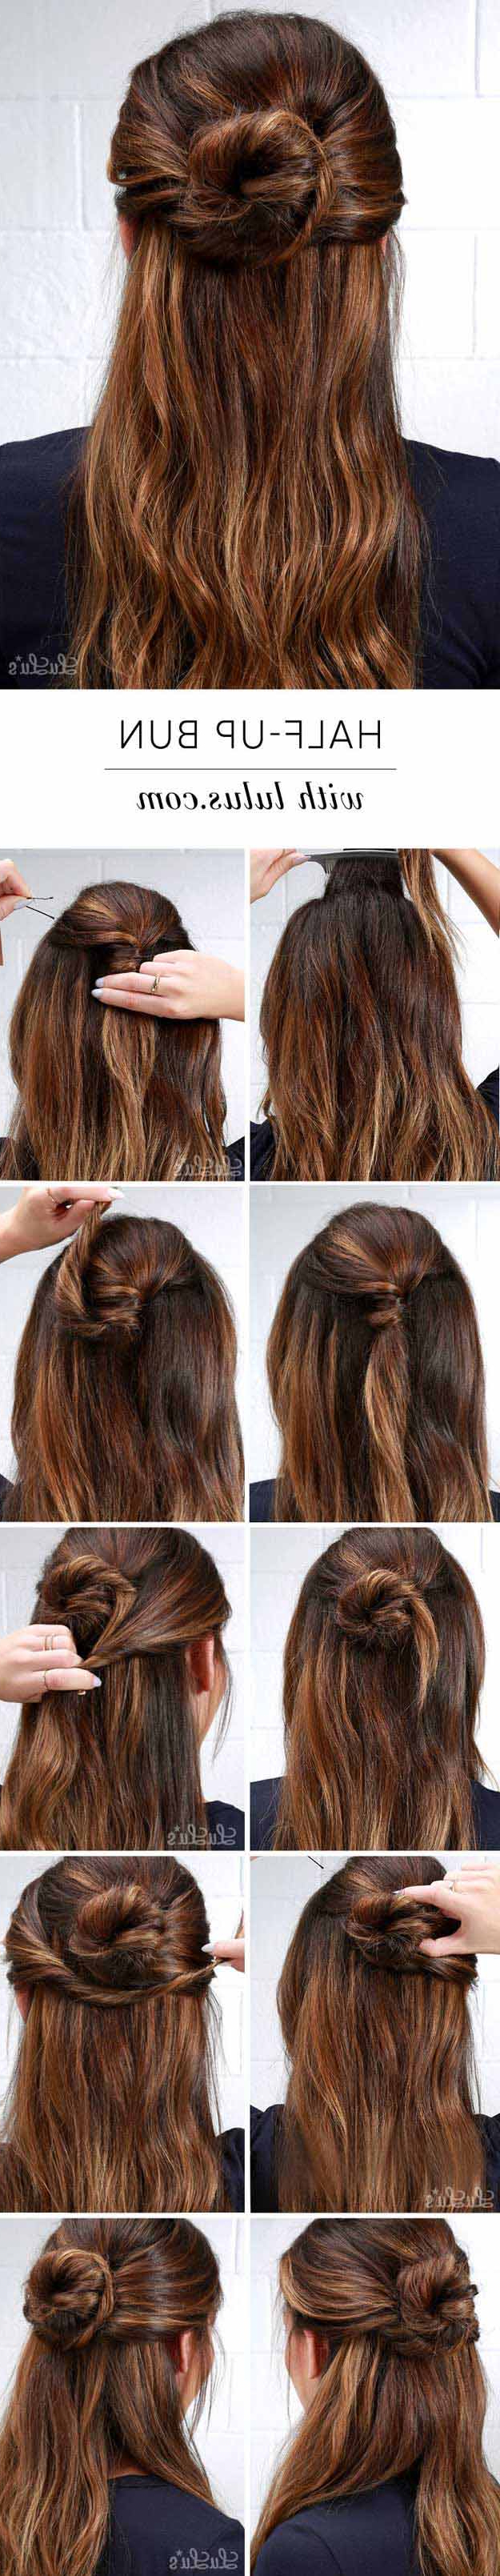 31 Amazing Half Up Half Down Hairstyles For Long Hair – The Goddess Intended For Newest Medium Half Up Half Down Bridal Hairstyles With Fancy Knots (View 2 of 20)